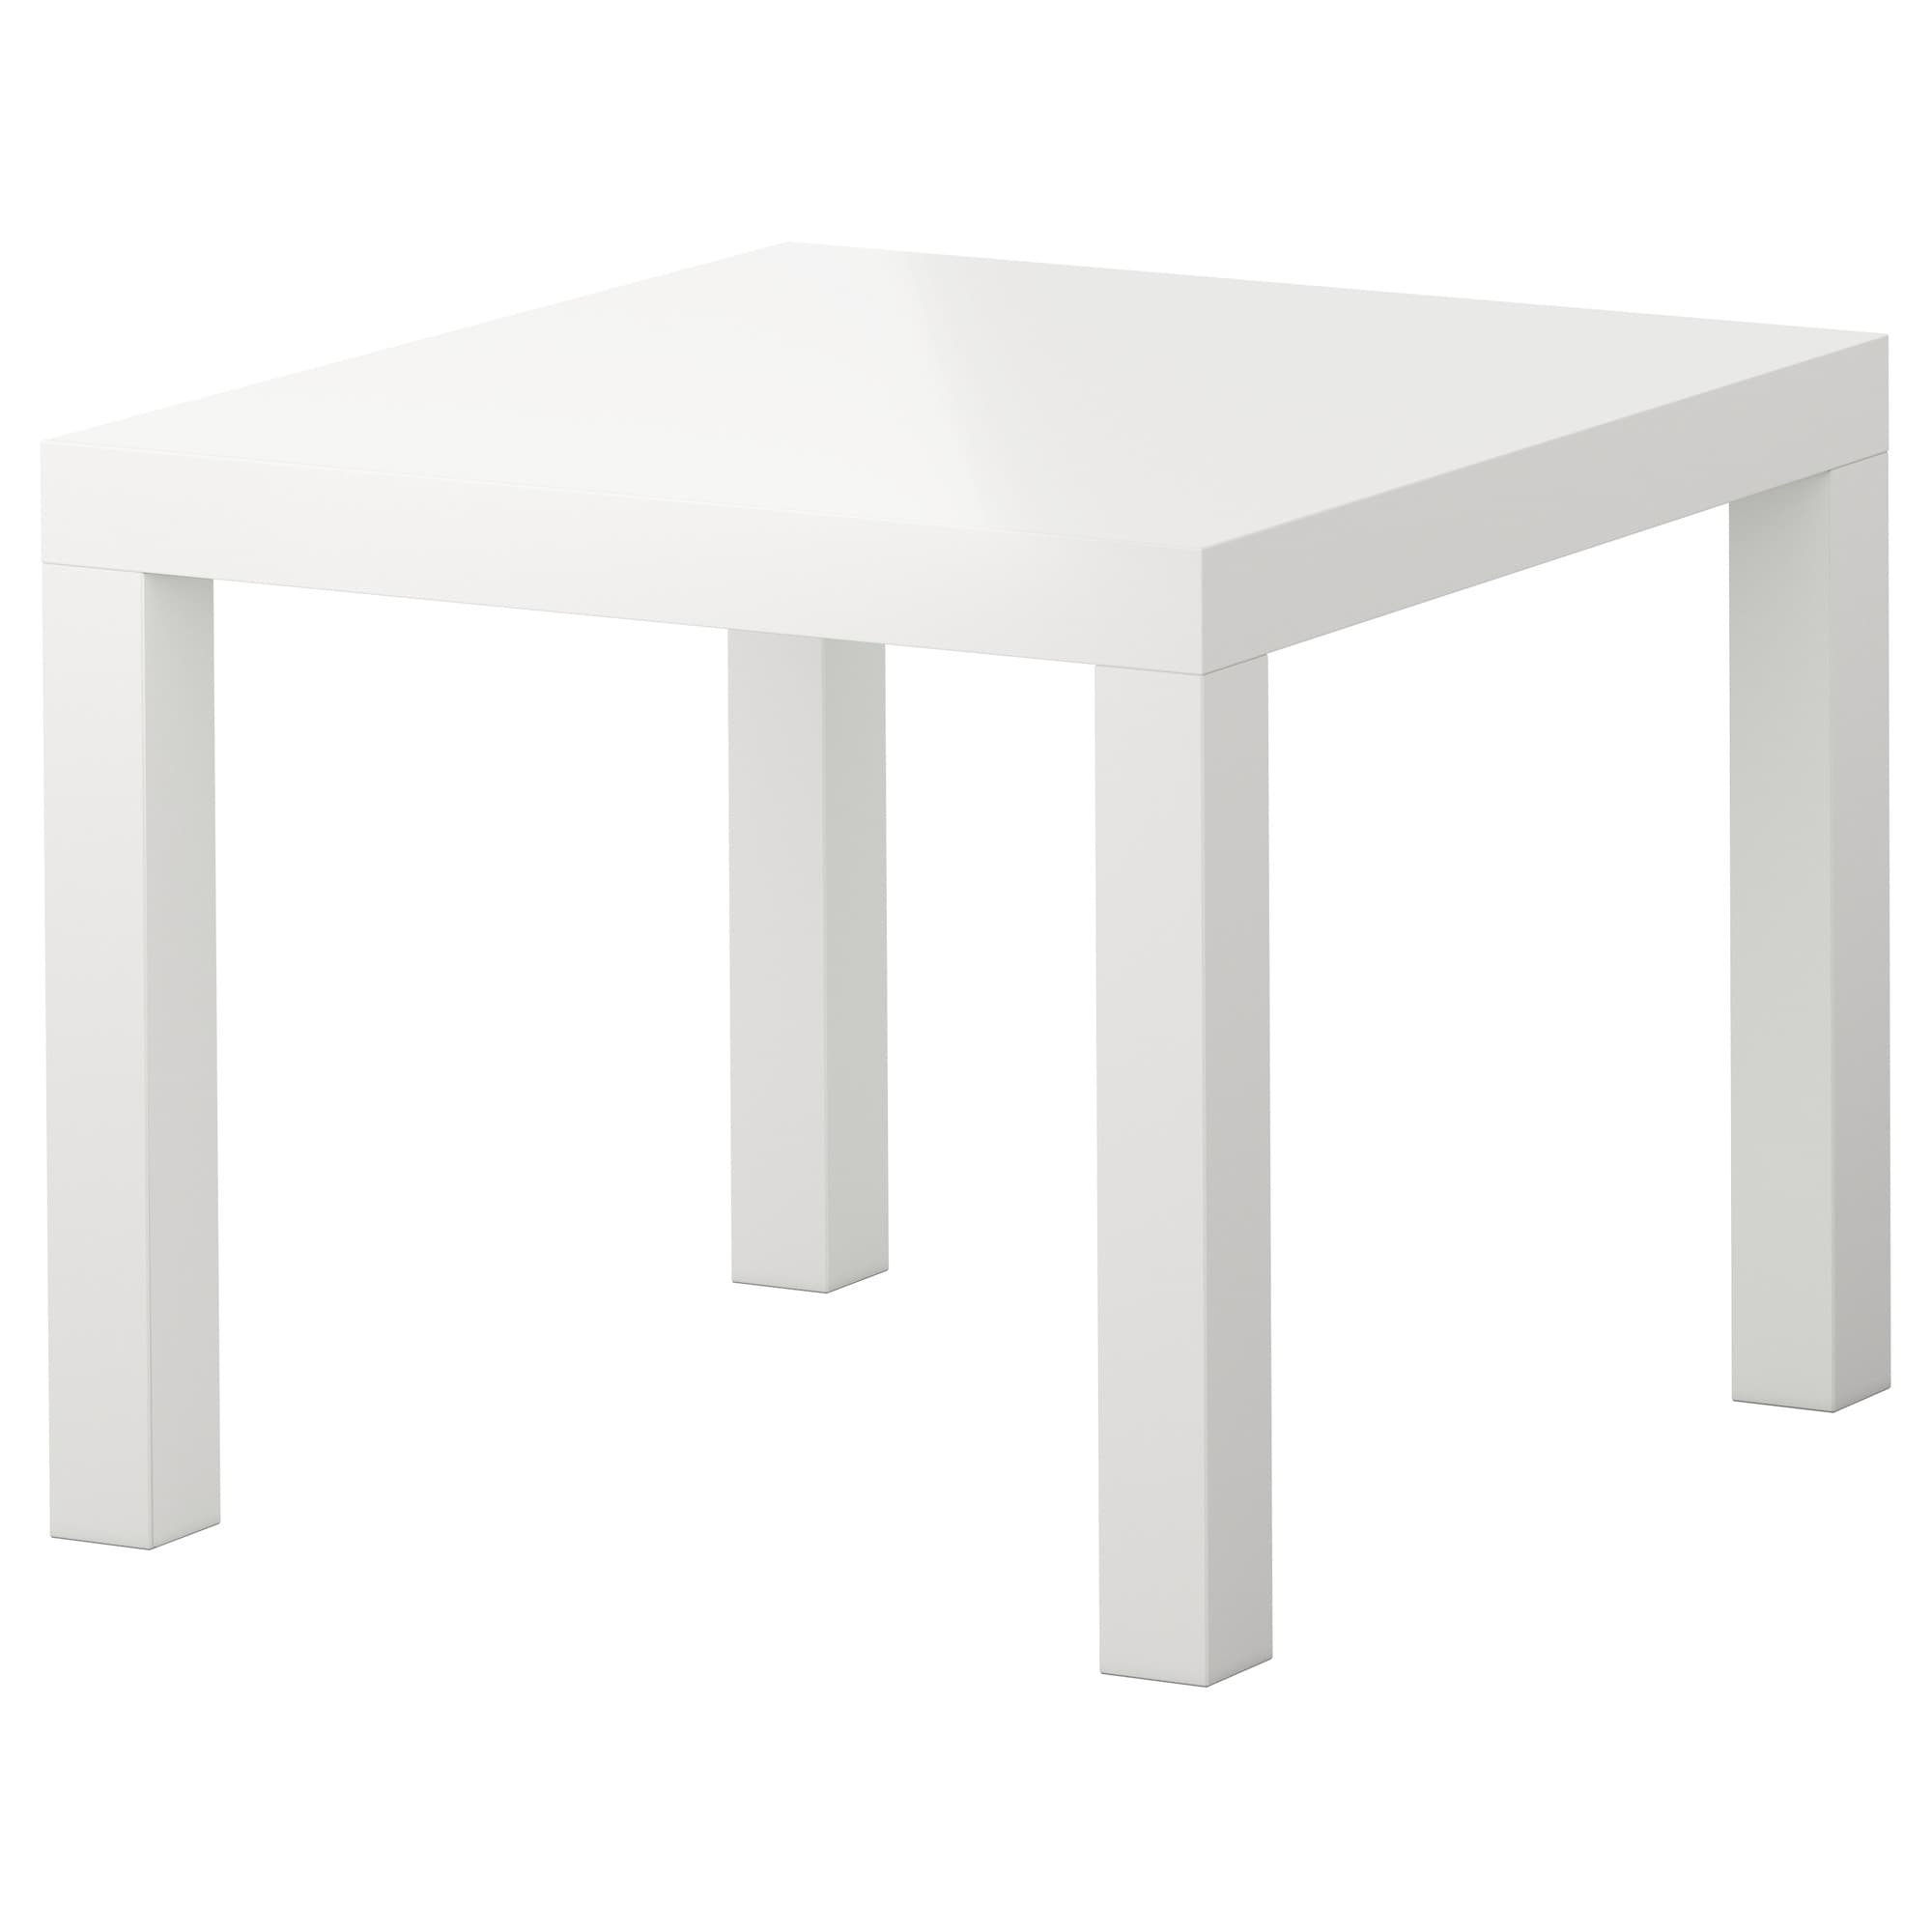 occasional tables tray storage window ikea lack side table high gloss white small rectangular accent the surfaces reflect light and give vibrant look outdoor coffee with umbrella